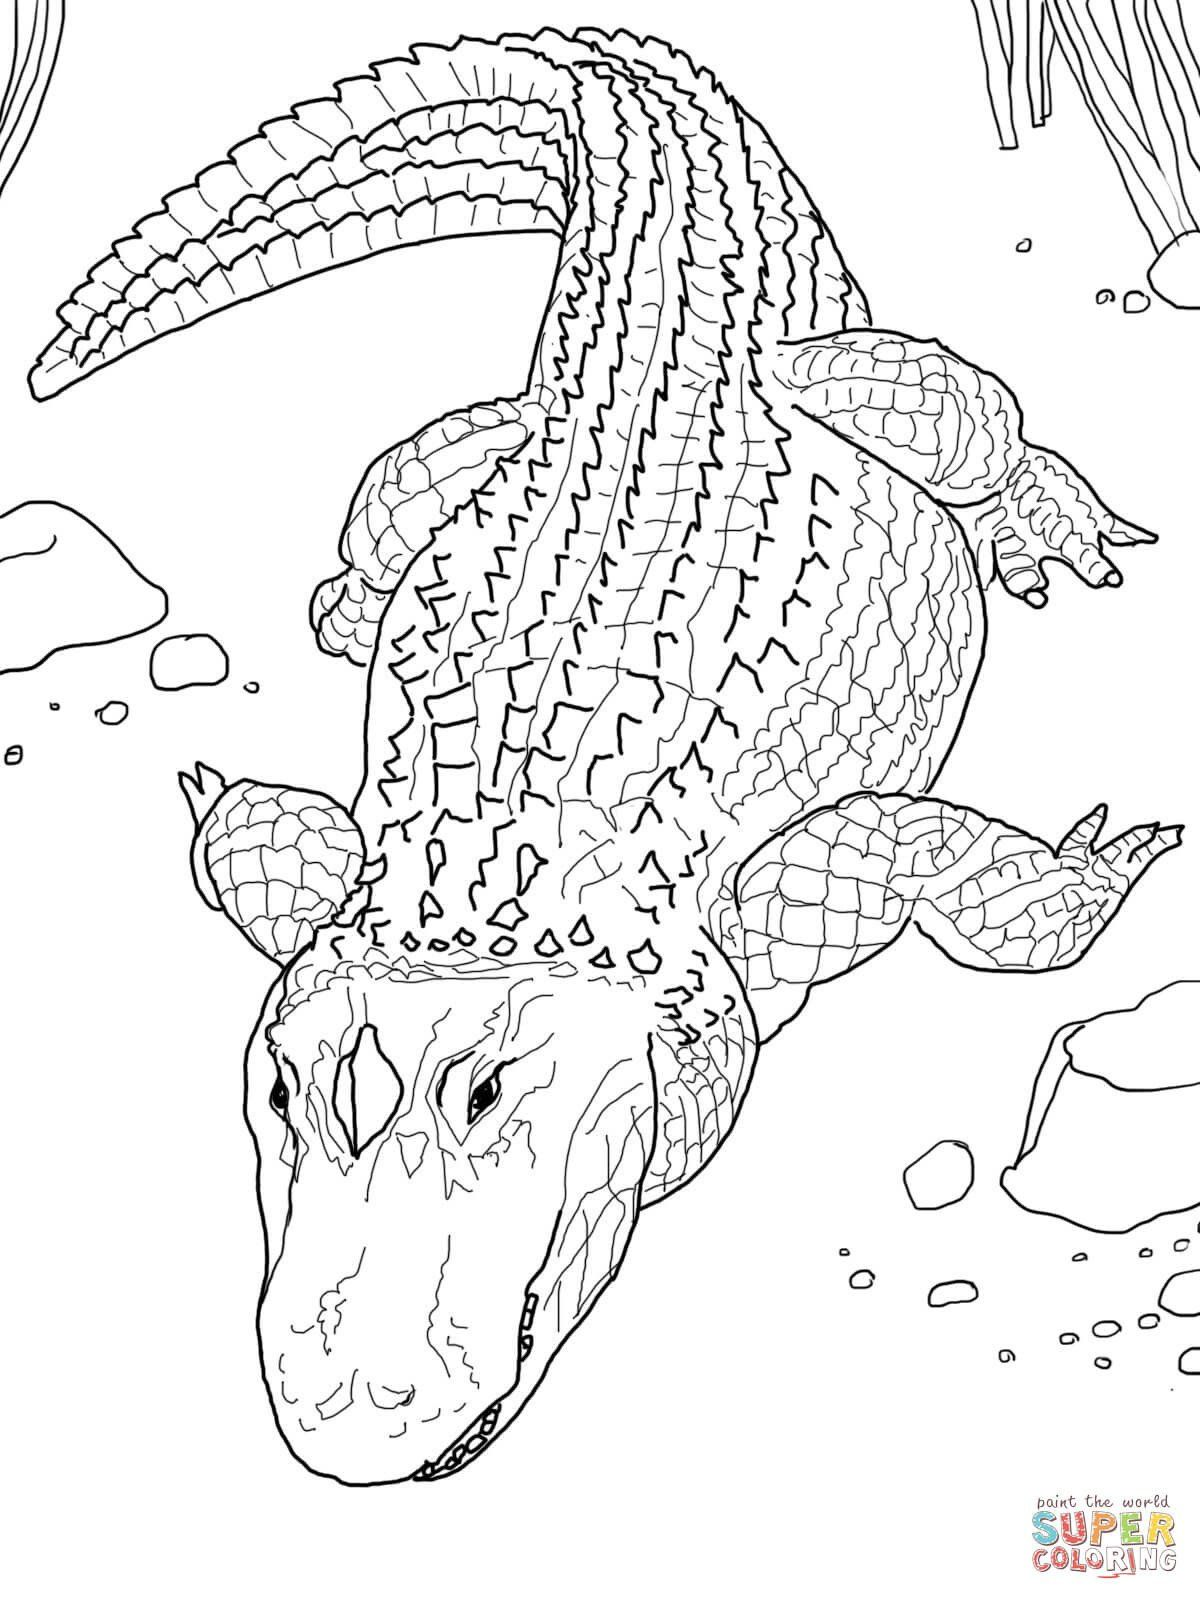 Cute Alligator Coloring Pages American Alligator Or Mon Alligator Coloring Page In 2020 Coloring Pages Cute Coloring Pages Jesus Coloring Pages